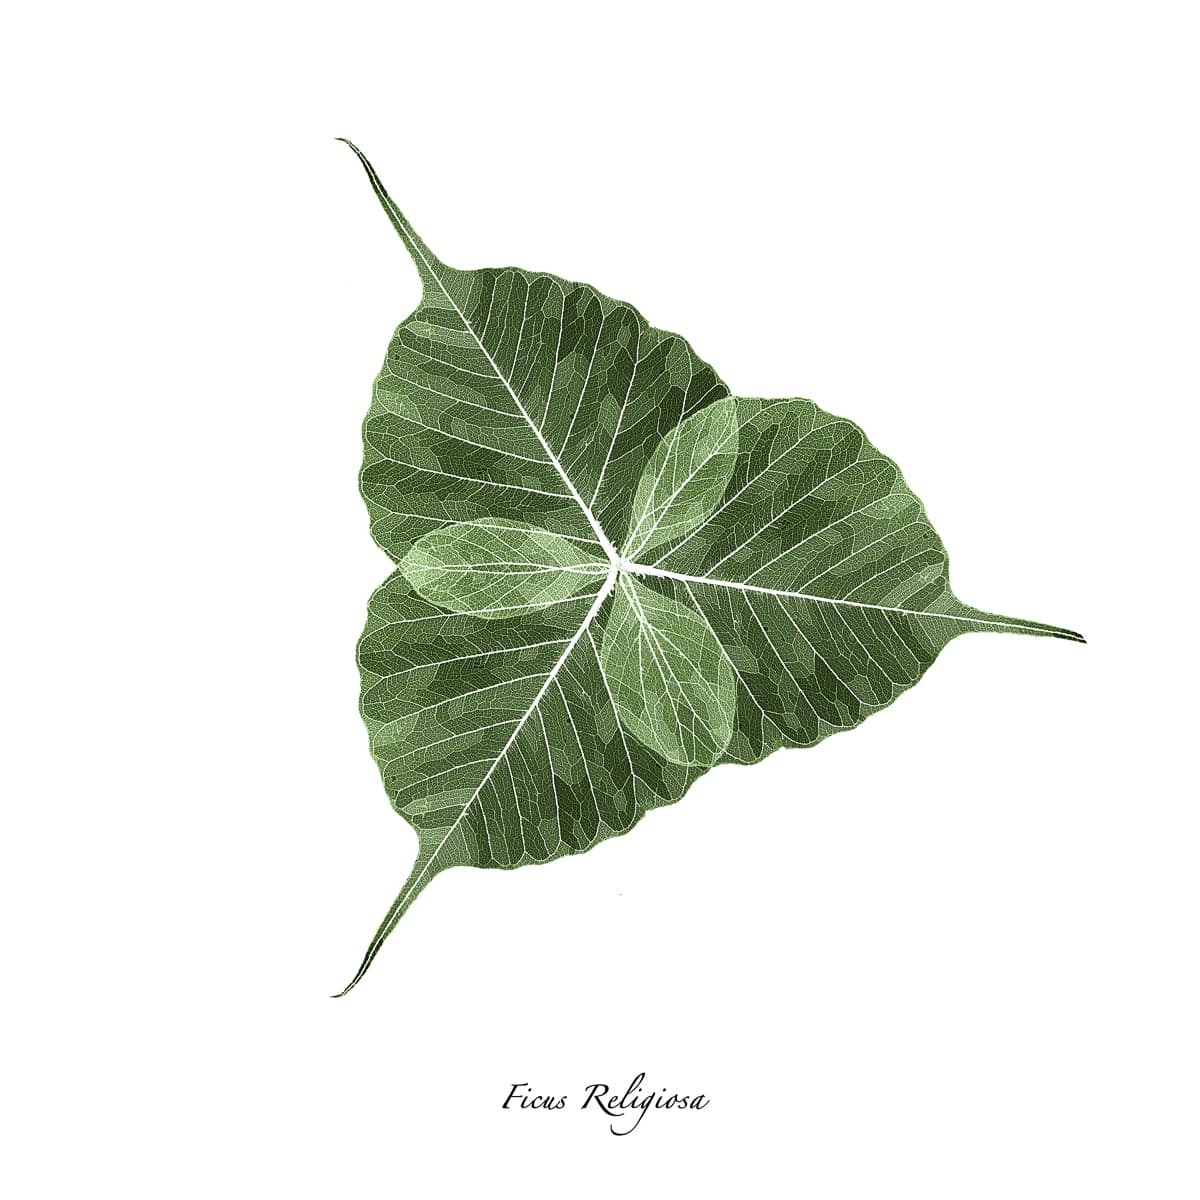 Three skeletonized Ficus Religiosa leaves overlapped to make a trefoil on a white background. Part of my botanical portraits collection.